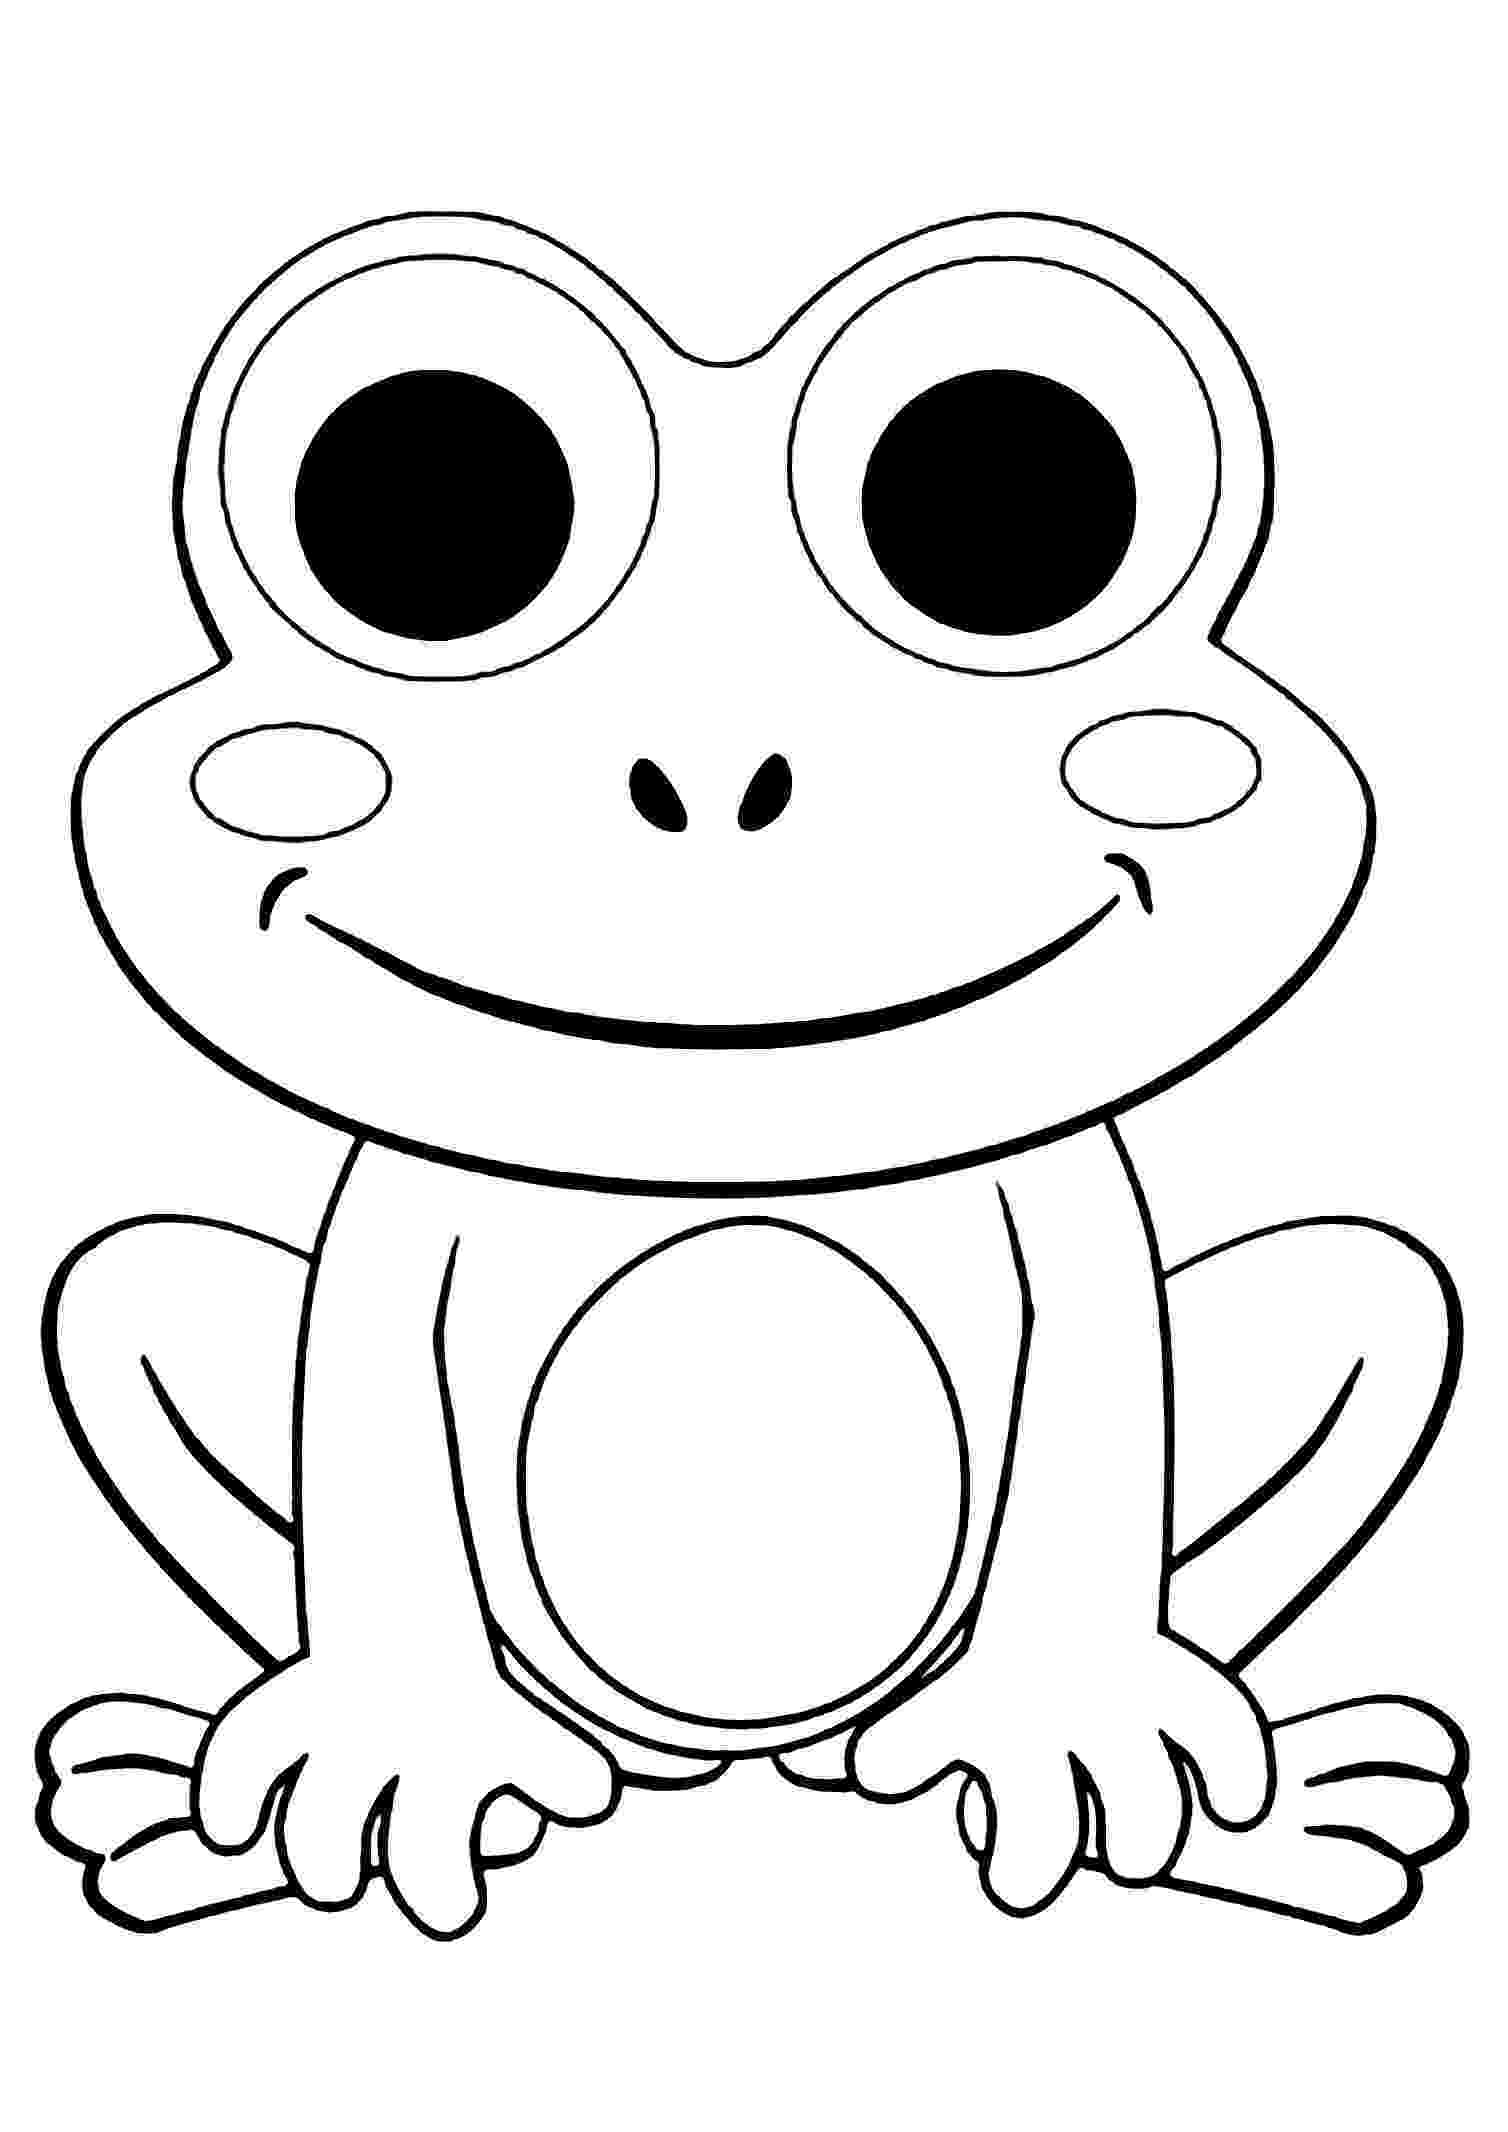 frog images to color free outline of a frog download free clip art free clip images frog color to